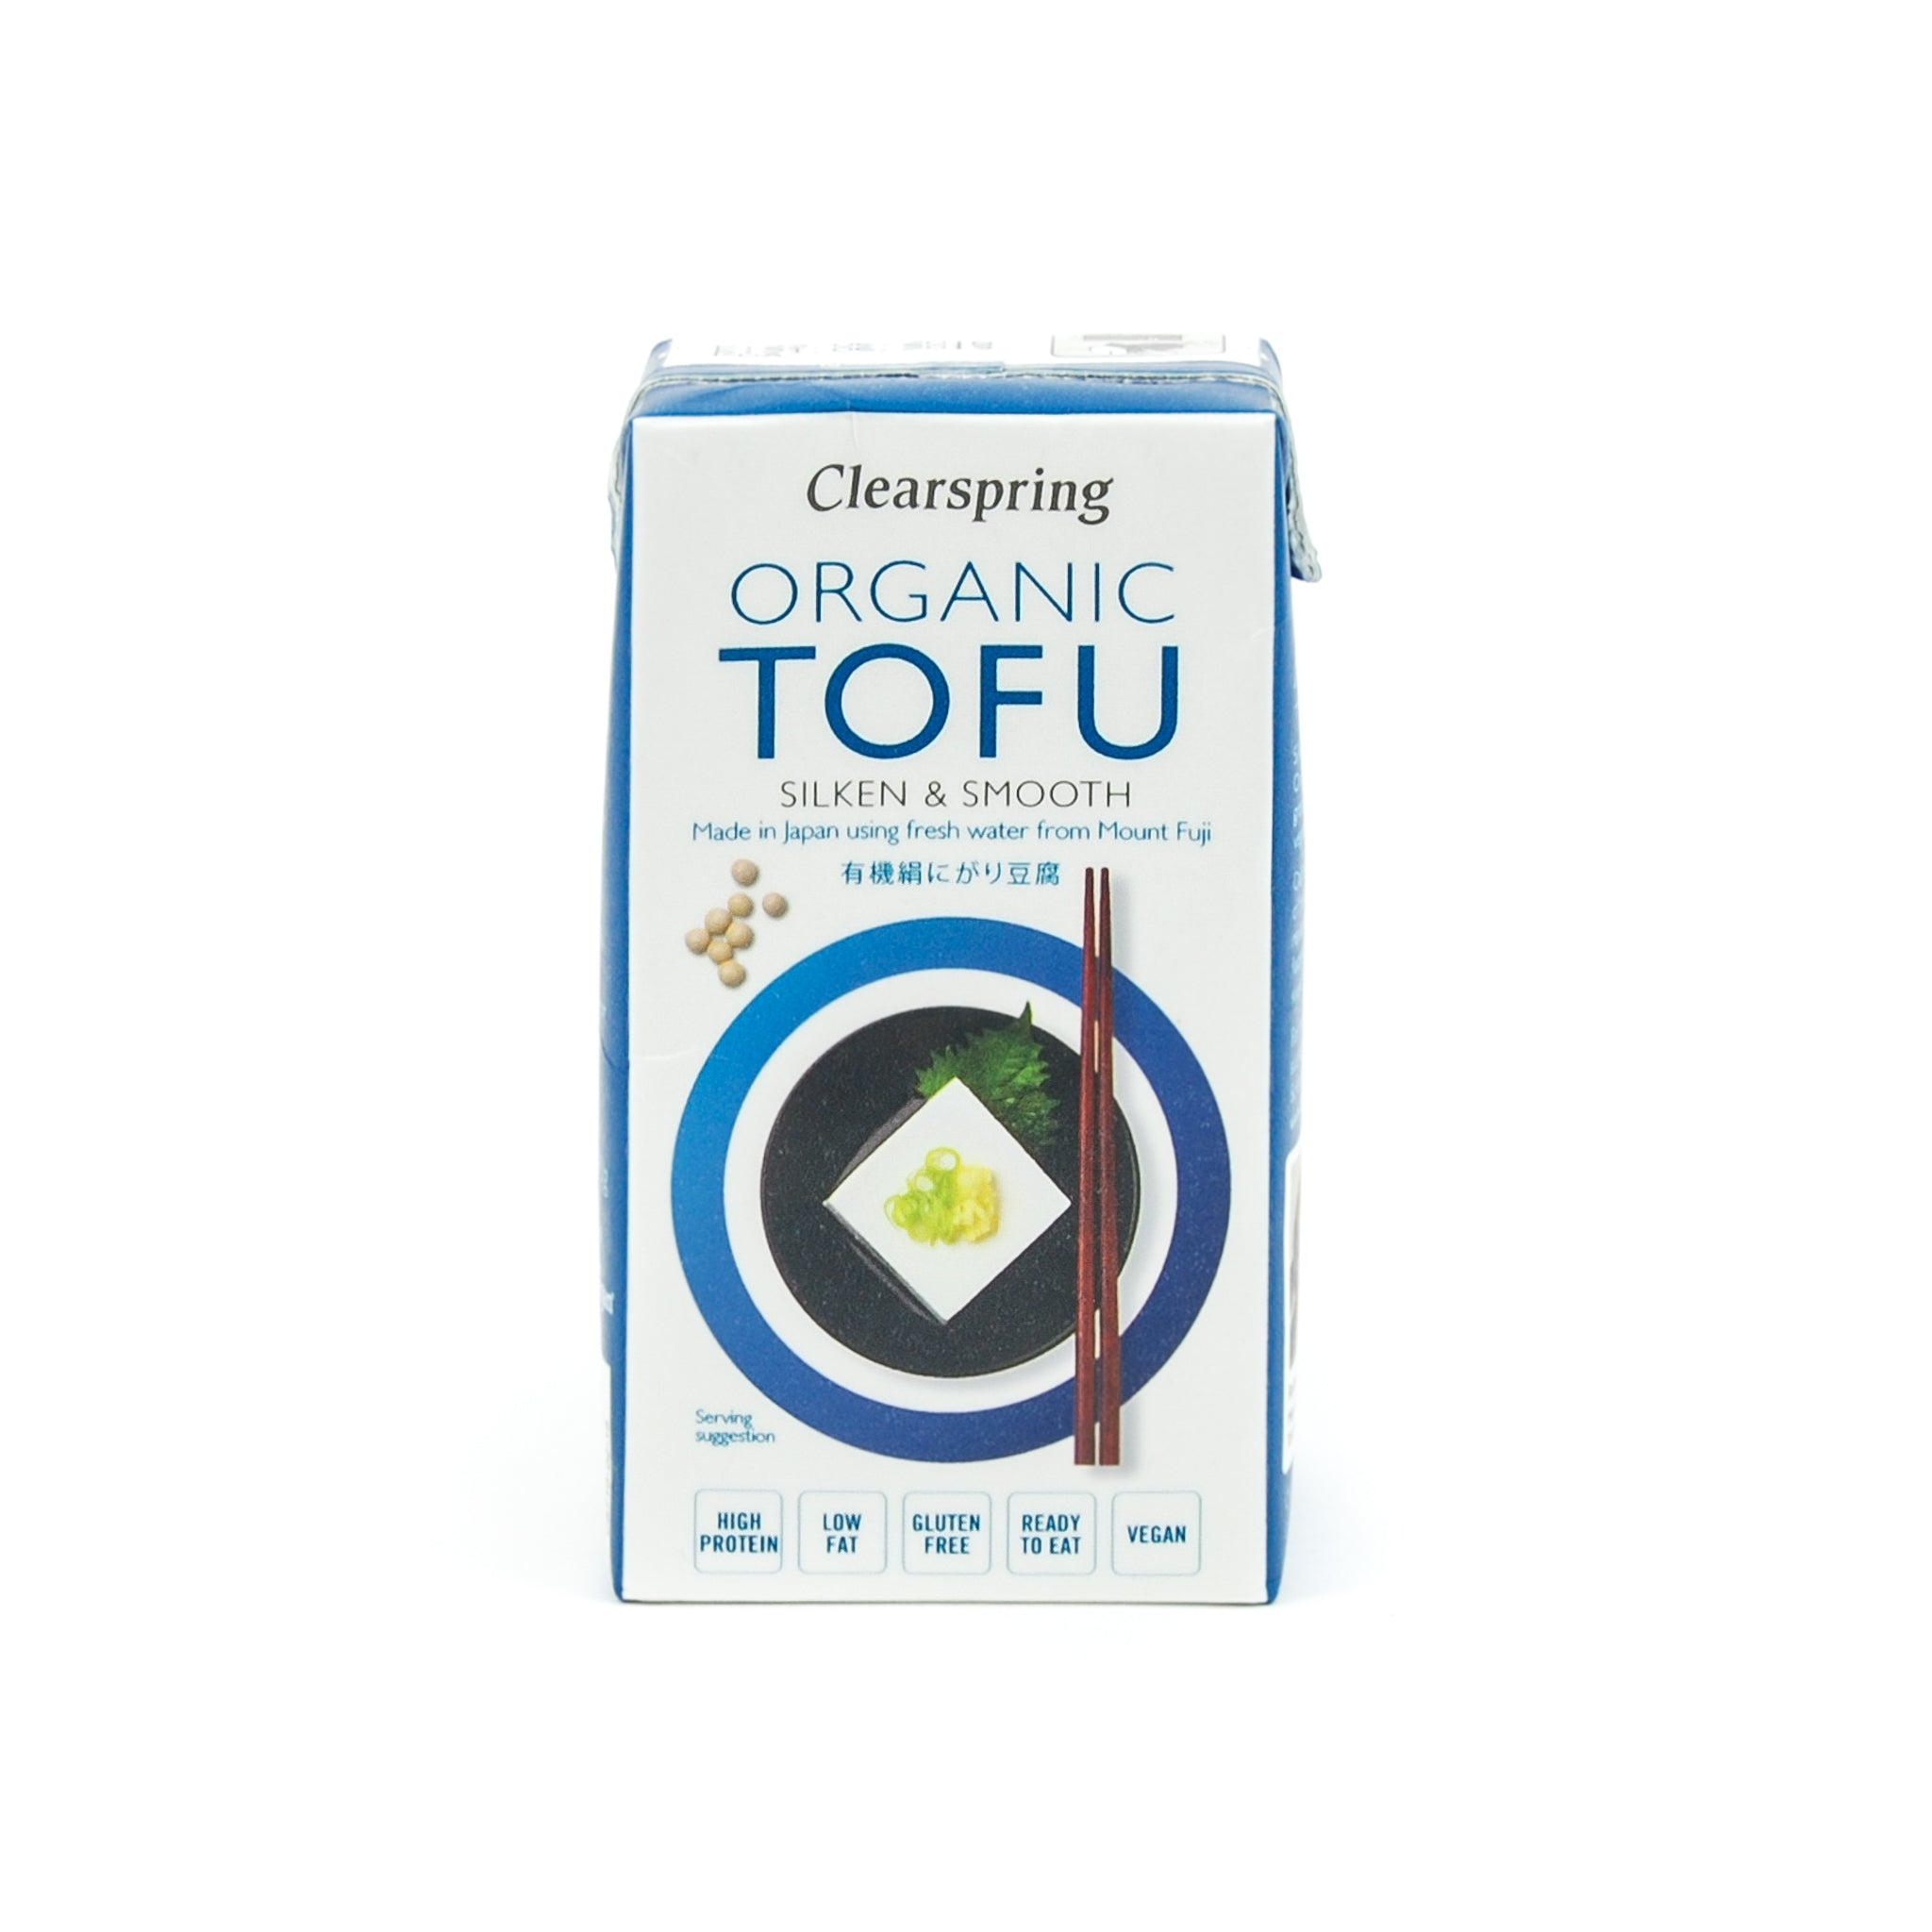 Clearspring Organic Tofu 300g Ingredients Tofu & Beans & Pulses Japanese Food